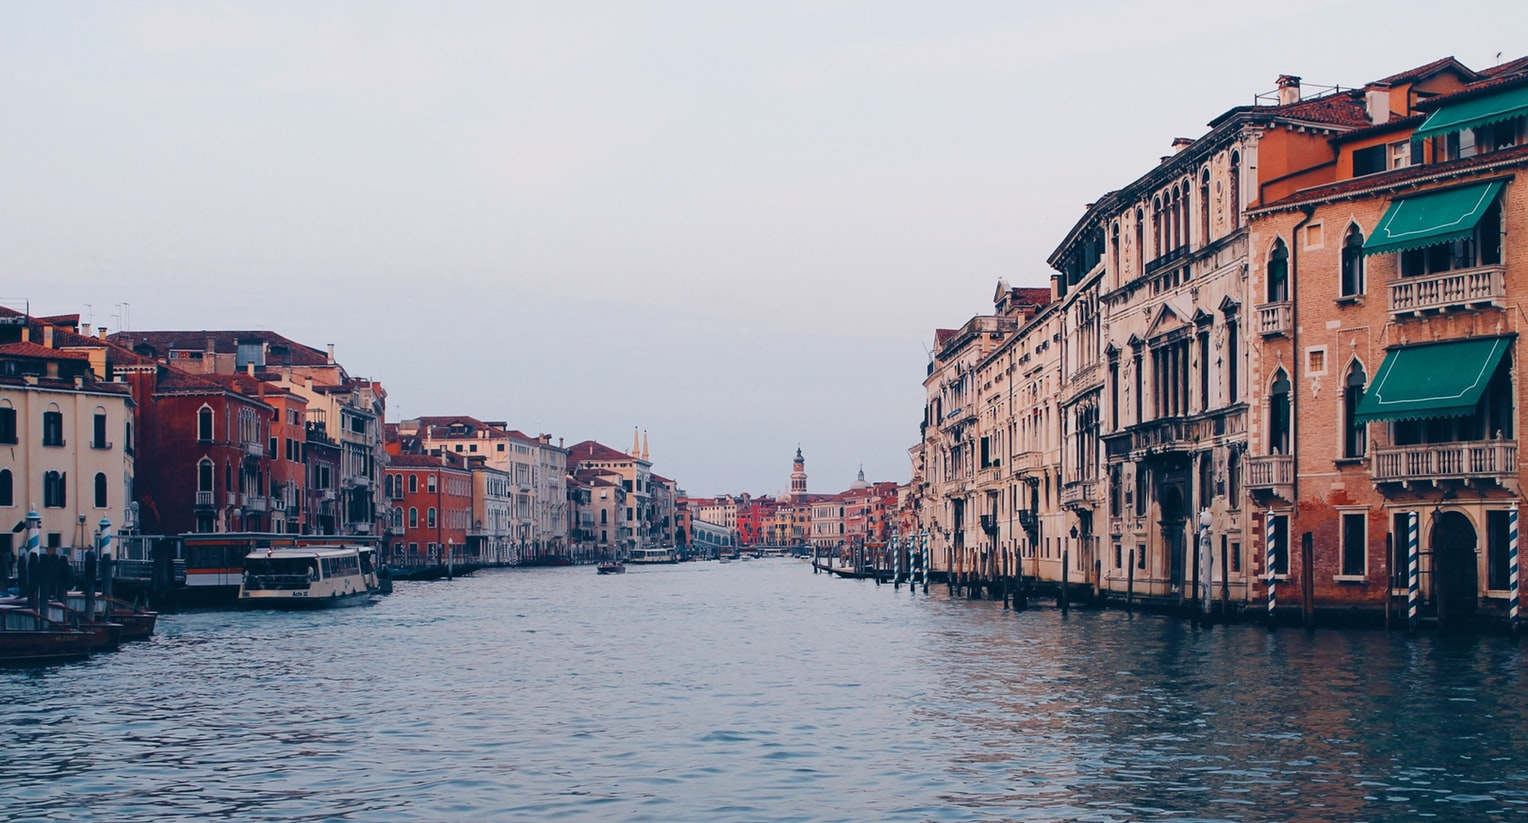 Opinions about Venice / Is it worth going on a trip to Venice? Read tourist reviews!